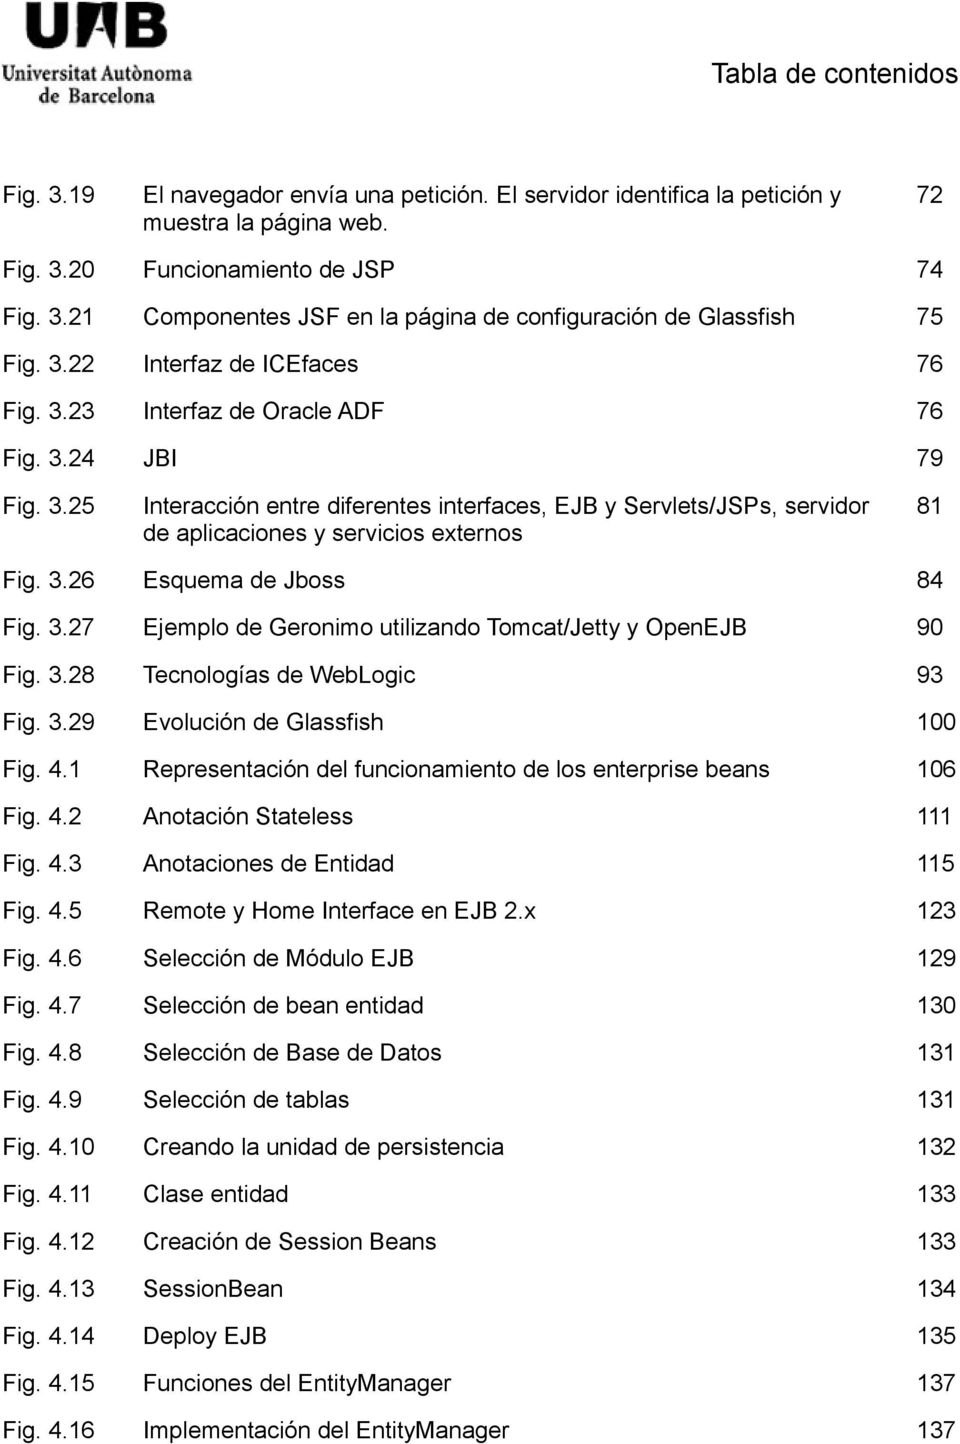 3.26 Esquema de Jboss 84 Fig. 3.27 Ejemplo de Geronimo utilizando Tomcat/Jetty y OpenEJB 90 Fig. 3.28 Tecnologías de WebLogic 93 Fig. 3.29 Evolución de Glassfish 100 Fig. 4.